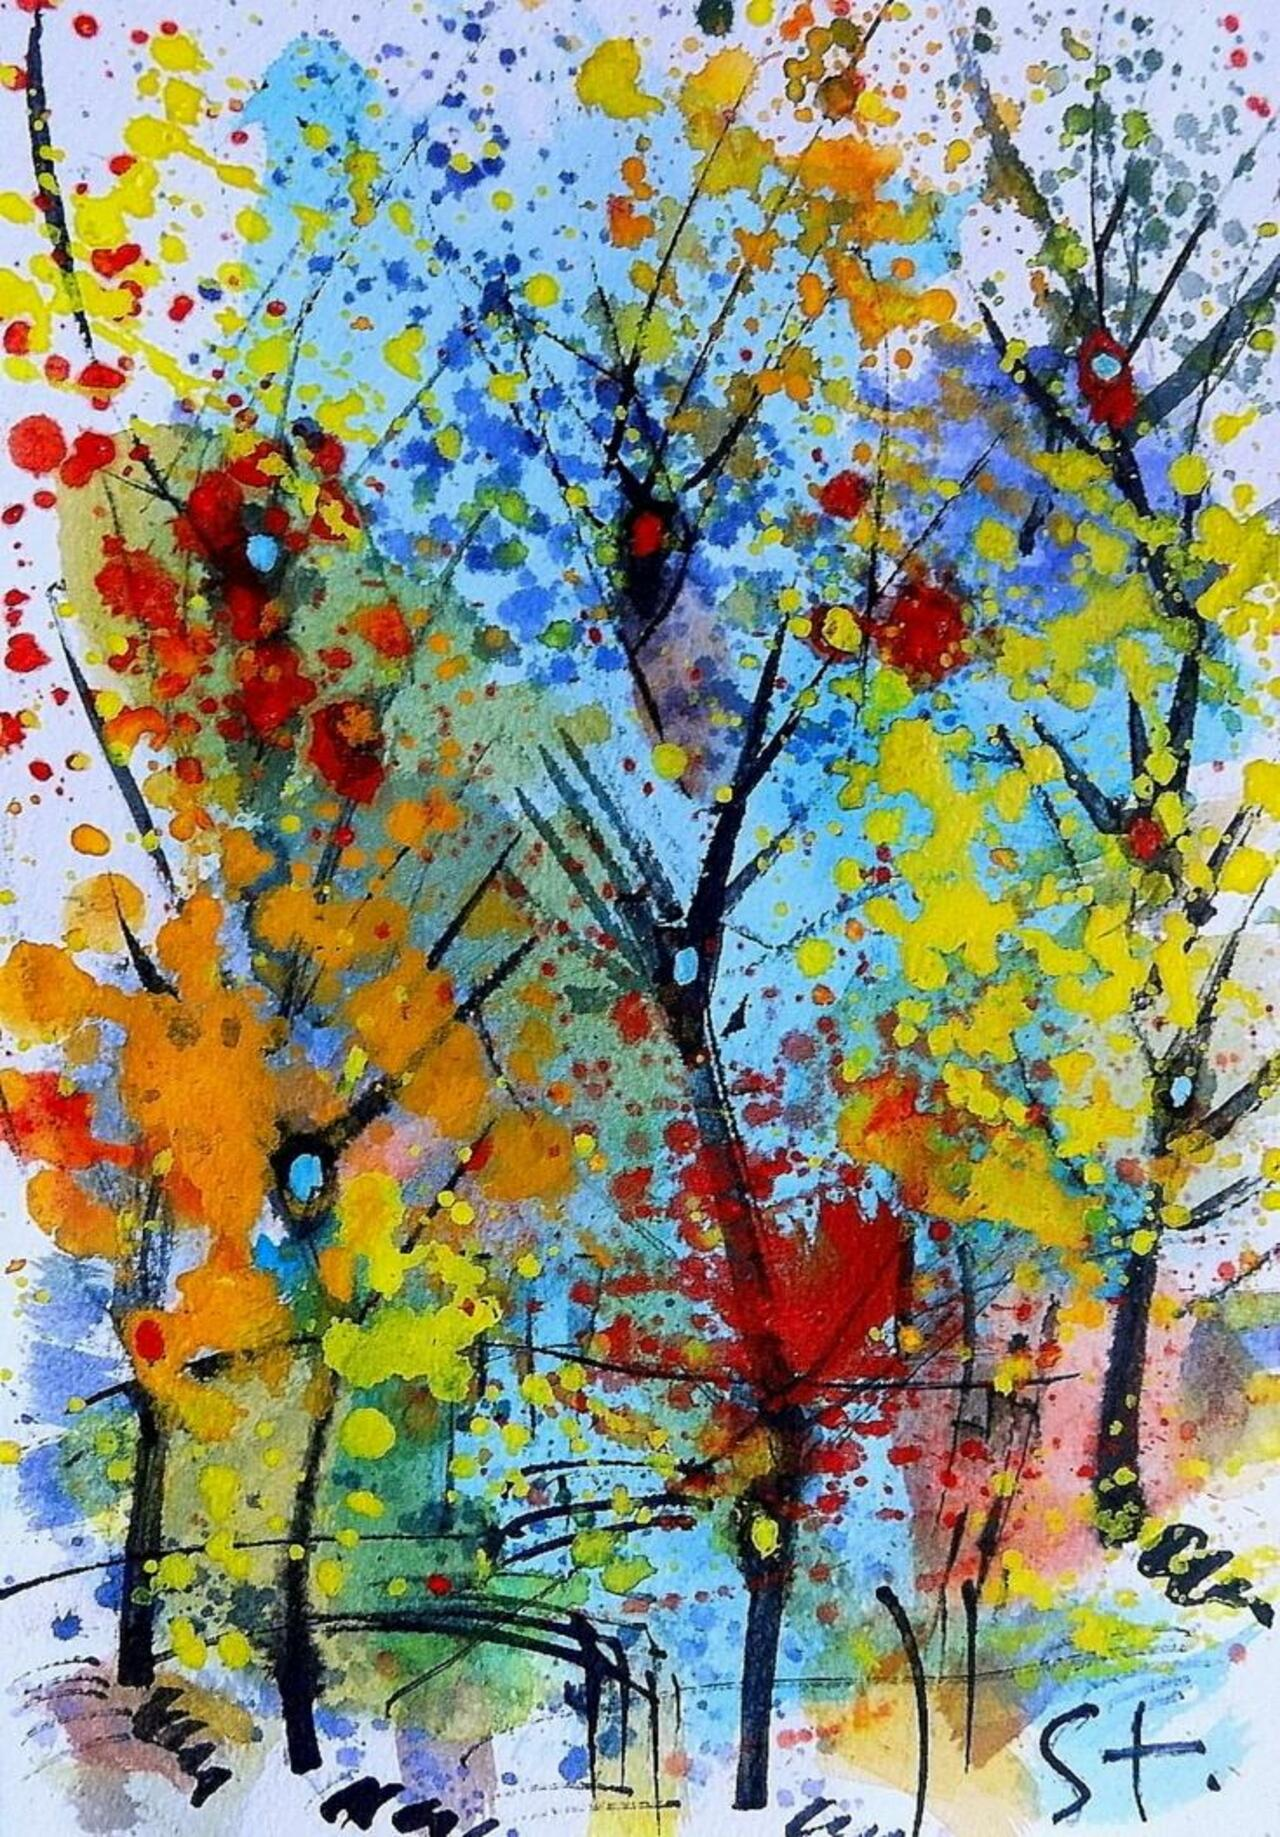 Landscaping-LXXX by Stanislav Bojankov #watercolor #painting #art http://artf.in/1FHijxL @artfinder http://t.co/FR56kmRrCm